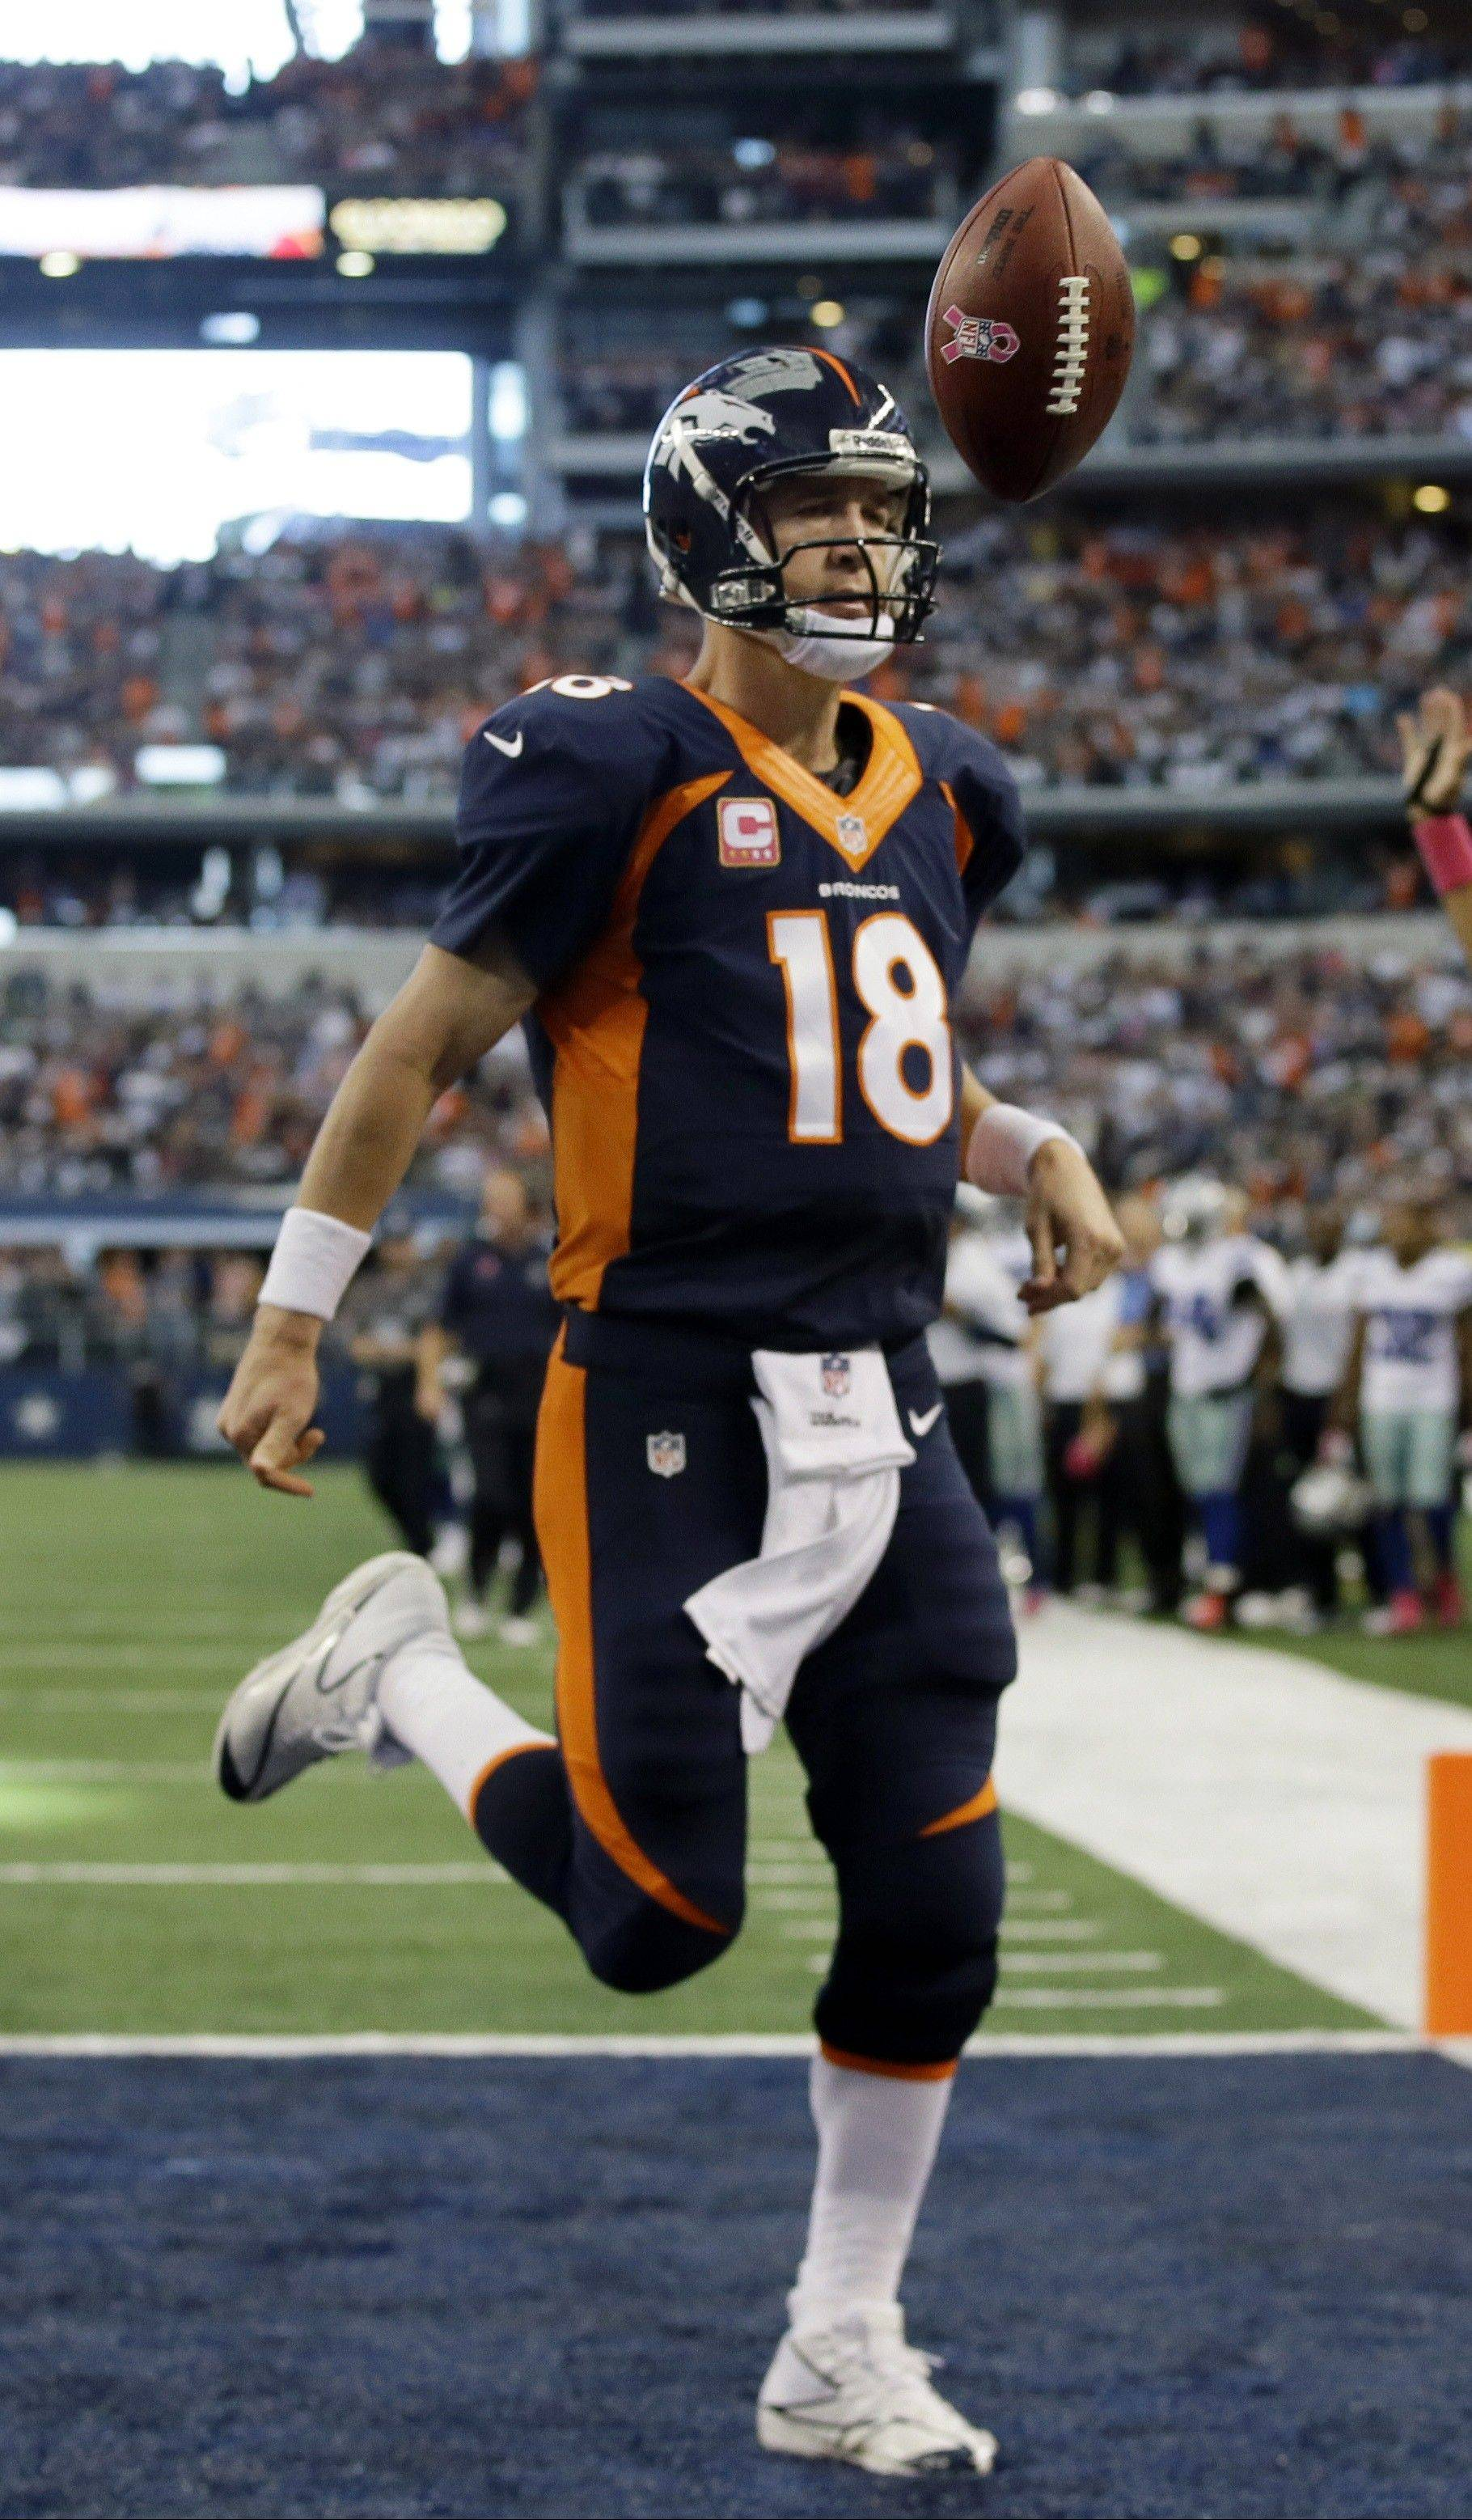 Broncos quarterback Peyton Manning owns a 9-11 playoff record compared to 167-73 during the regular season. He has won one Super Bowl, against the Bears in 2007.